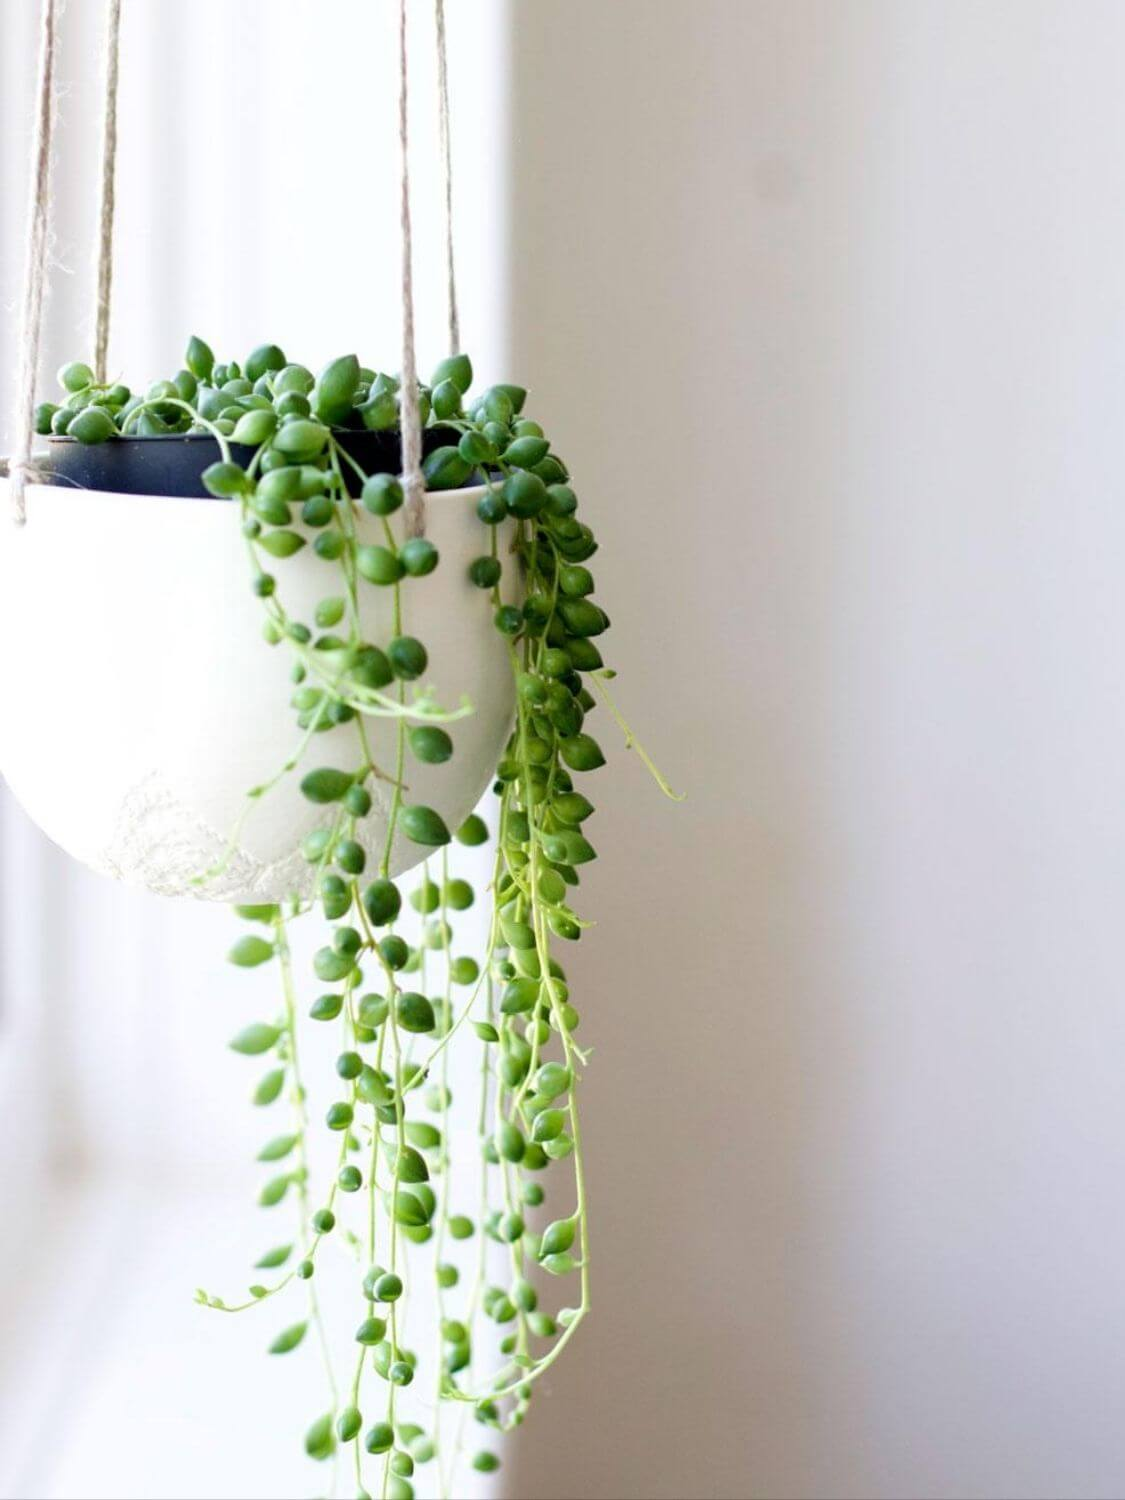 Source: lobsterandswan.com // Are you looking to add more plant life to your space? Not sure where to start? Check out today's Plant Love, String of Pearls Edition! #tulipandsage #stringofpearlsplant #stringofpearlsplantcare #howtocareforstringofpearlsplant